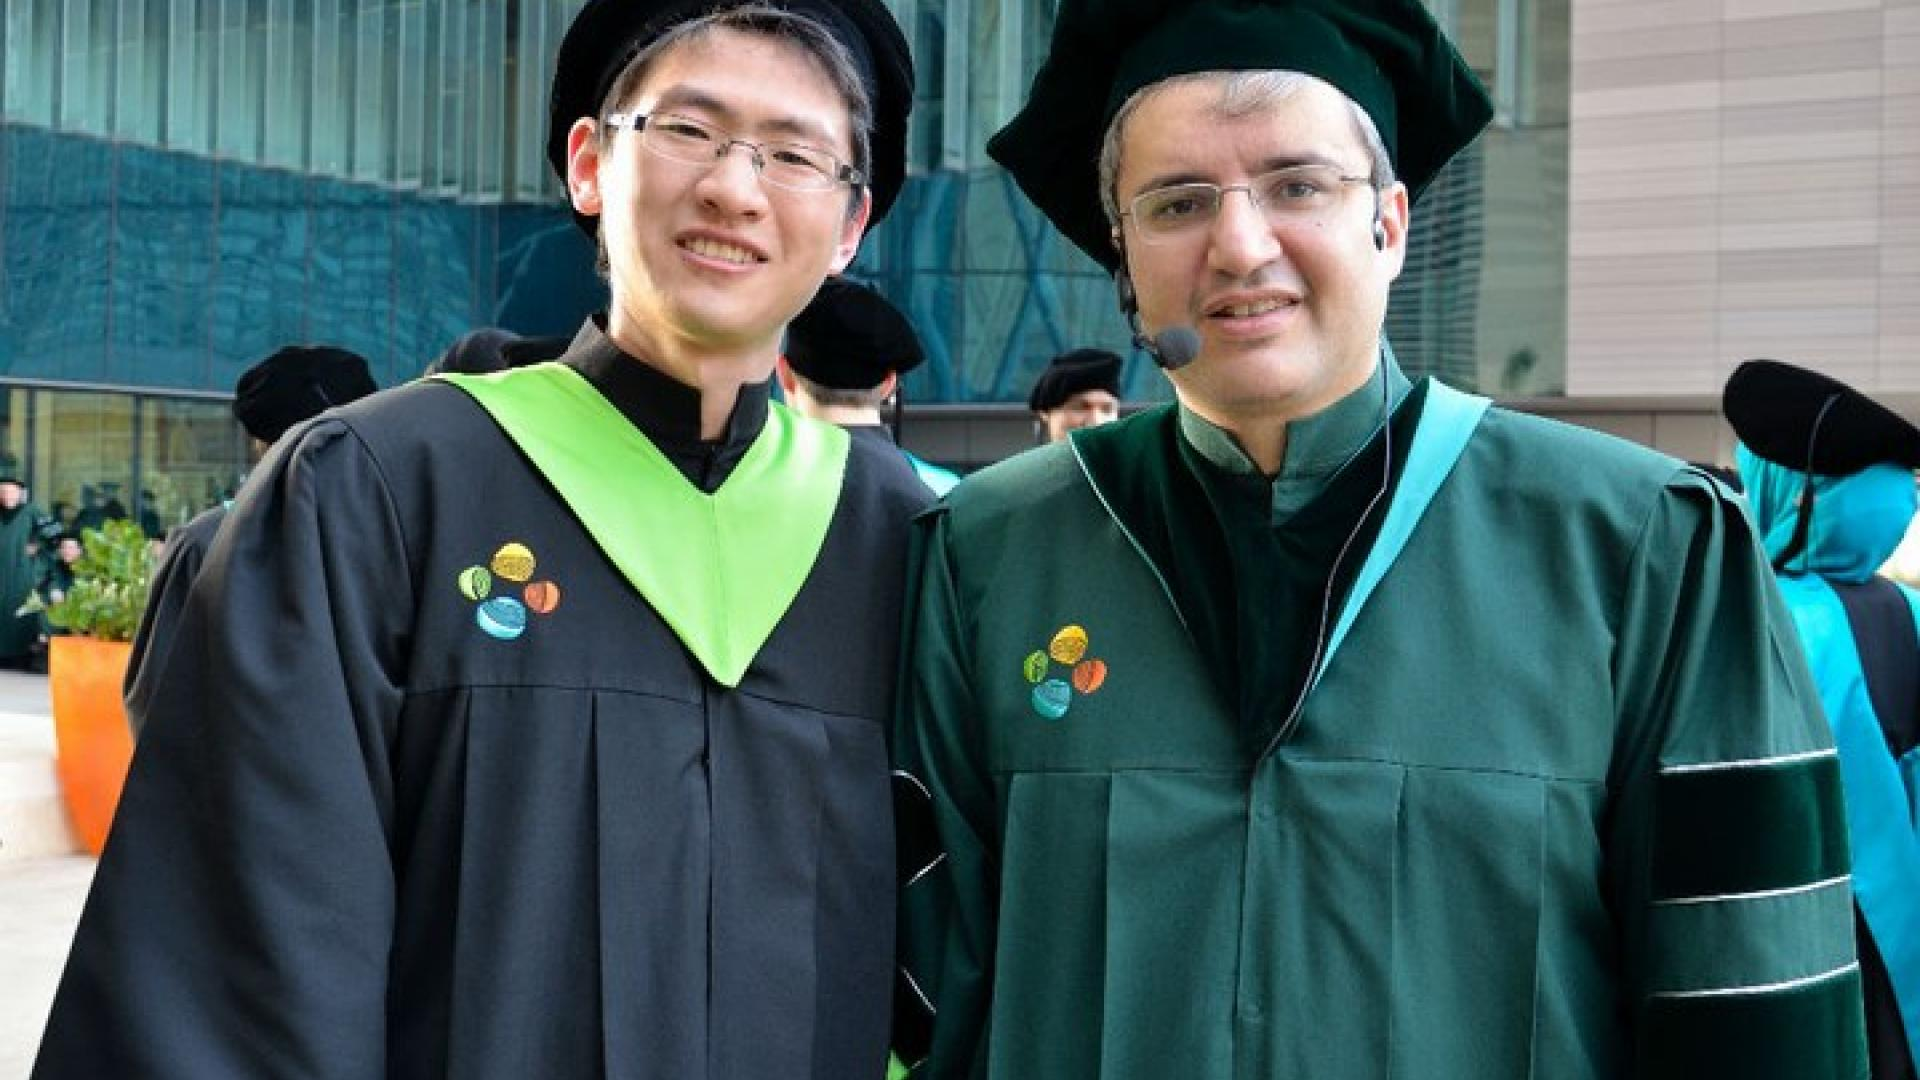 Yao Song With Professor Mohamed-Slim Alouini on His Graduation